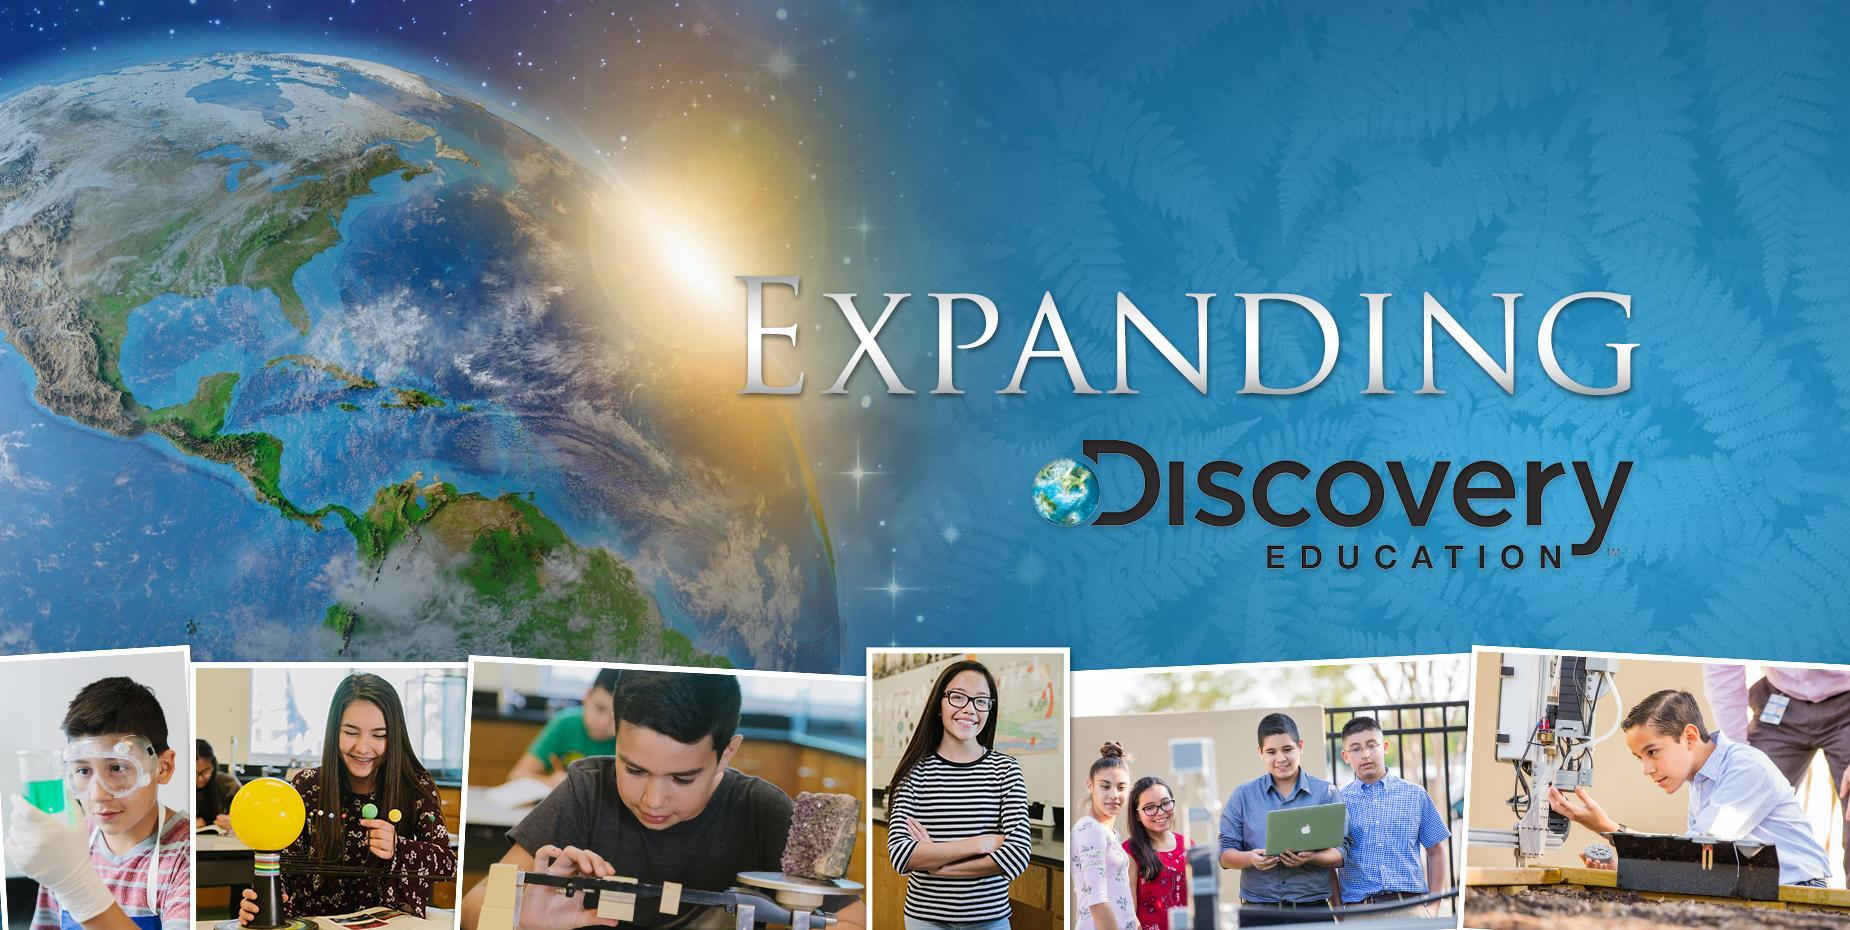 Expanding discovery education at HCISD